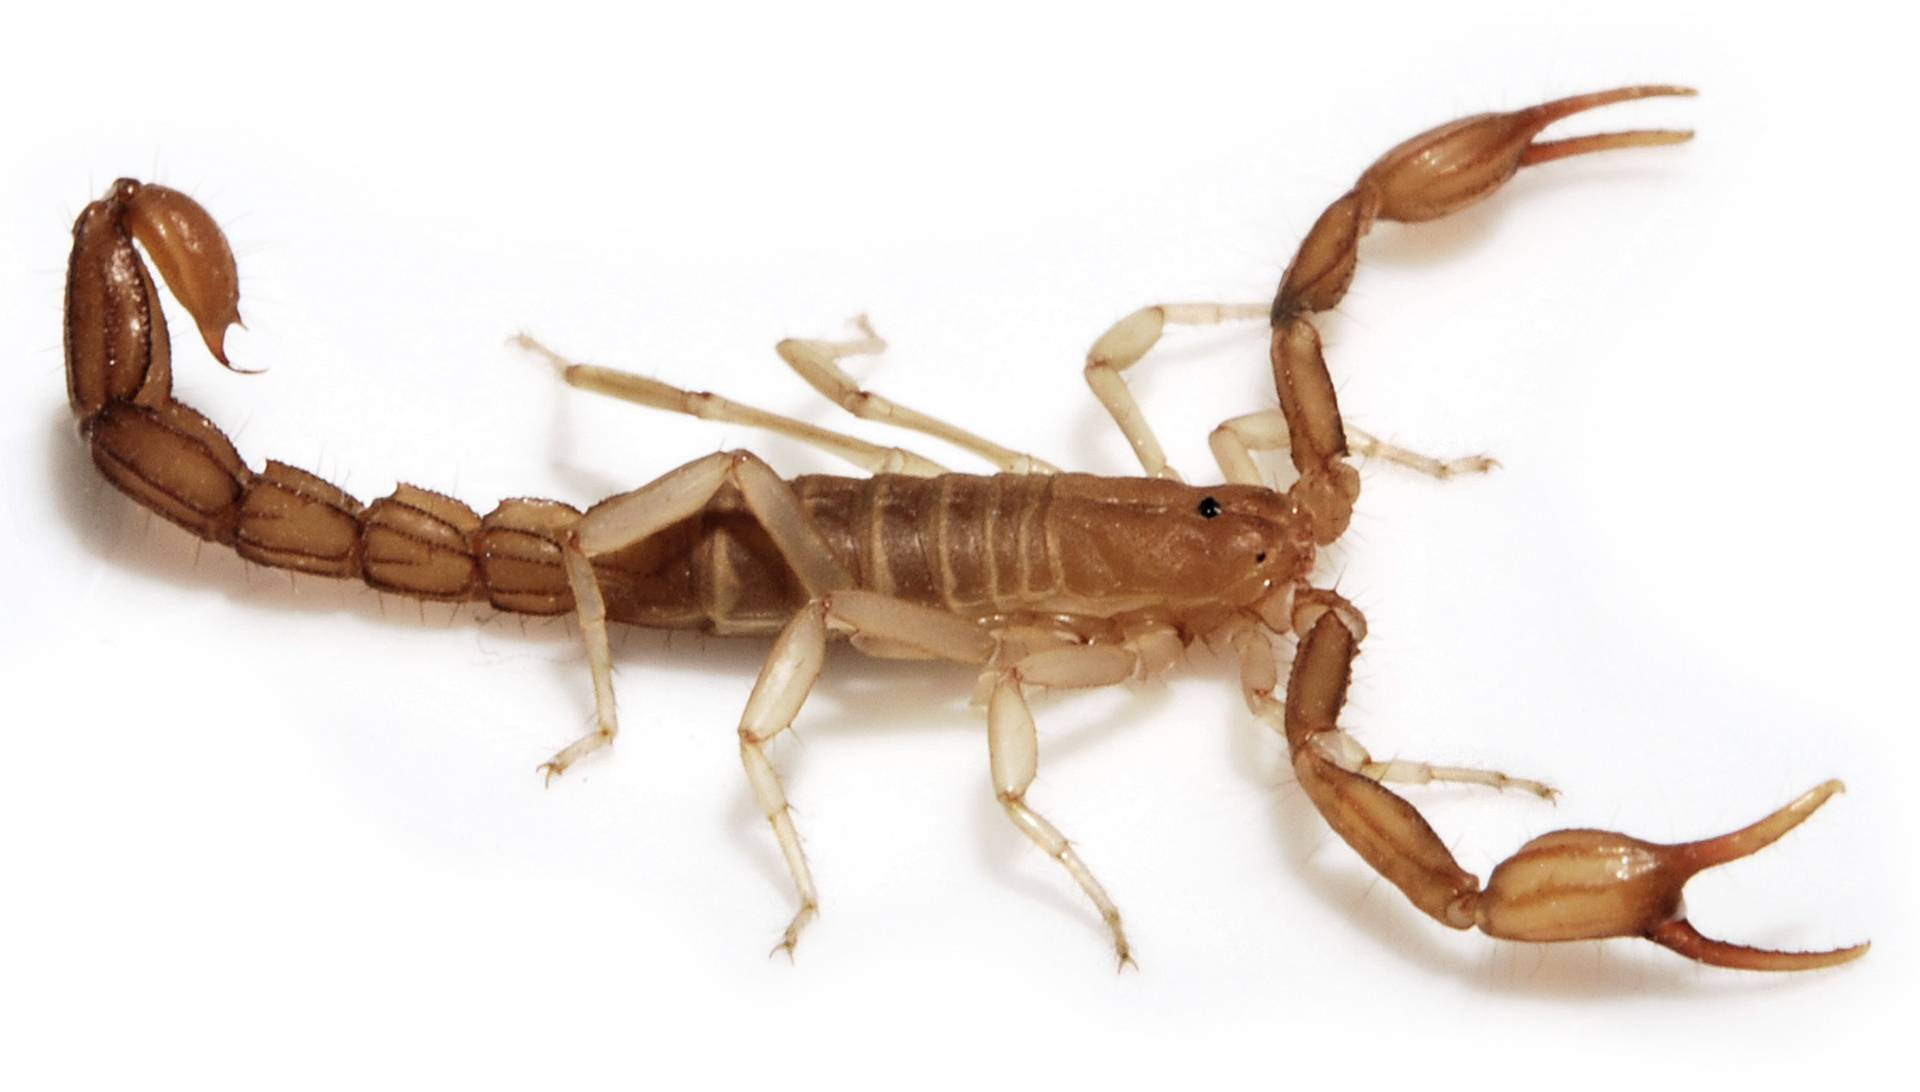 Live Scorpion found in spinach bag